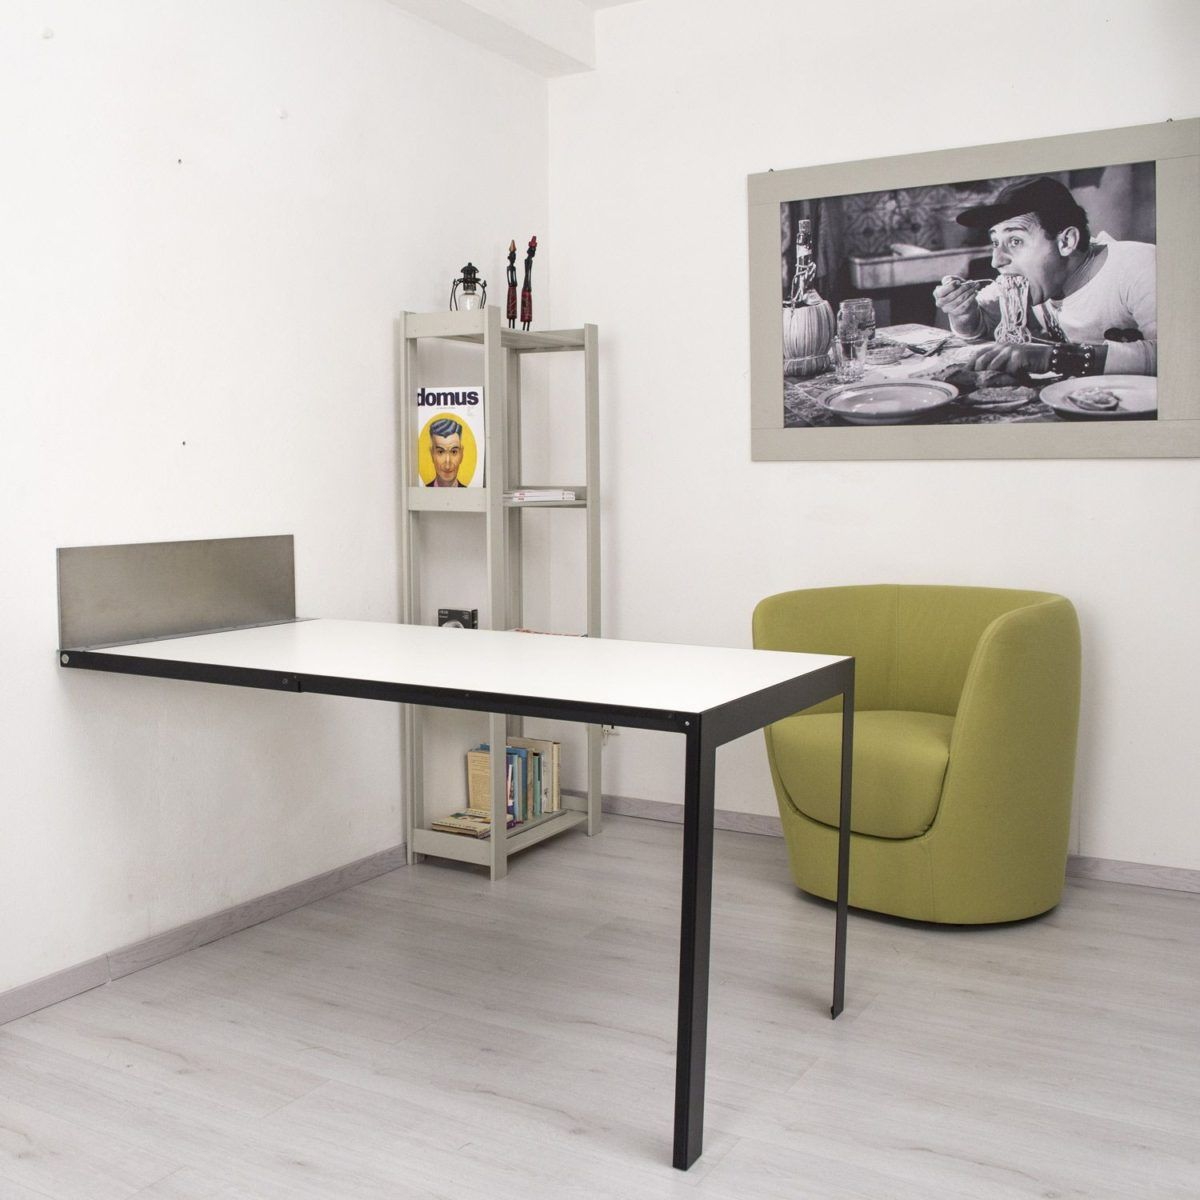 The Vengio Table Resource Furniture Multifunctional Furniture